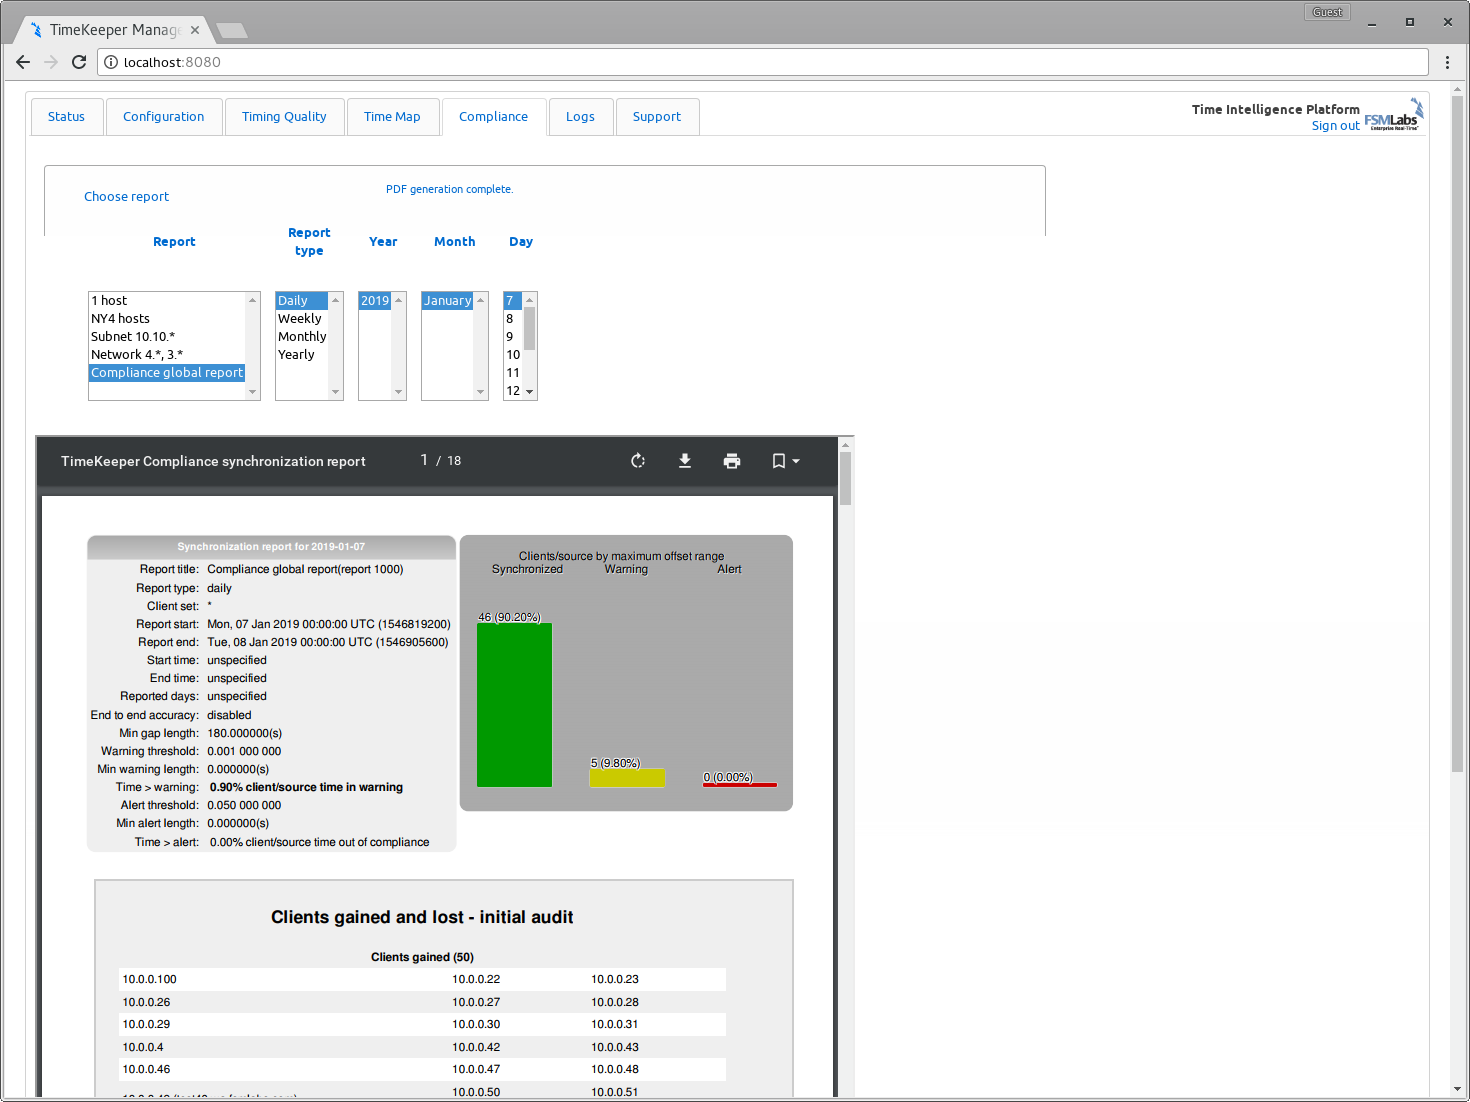 Compliance overview and setup